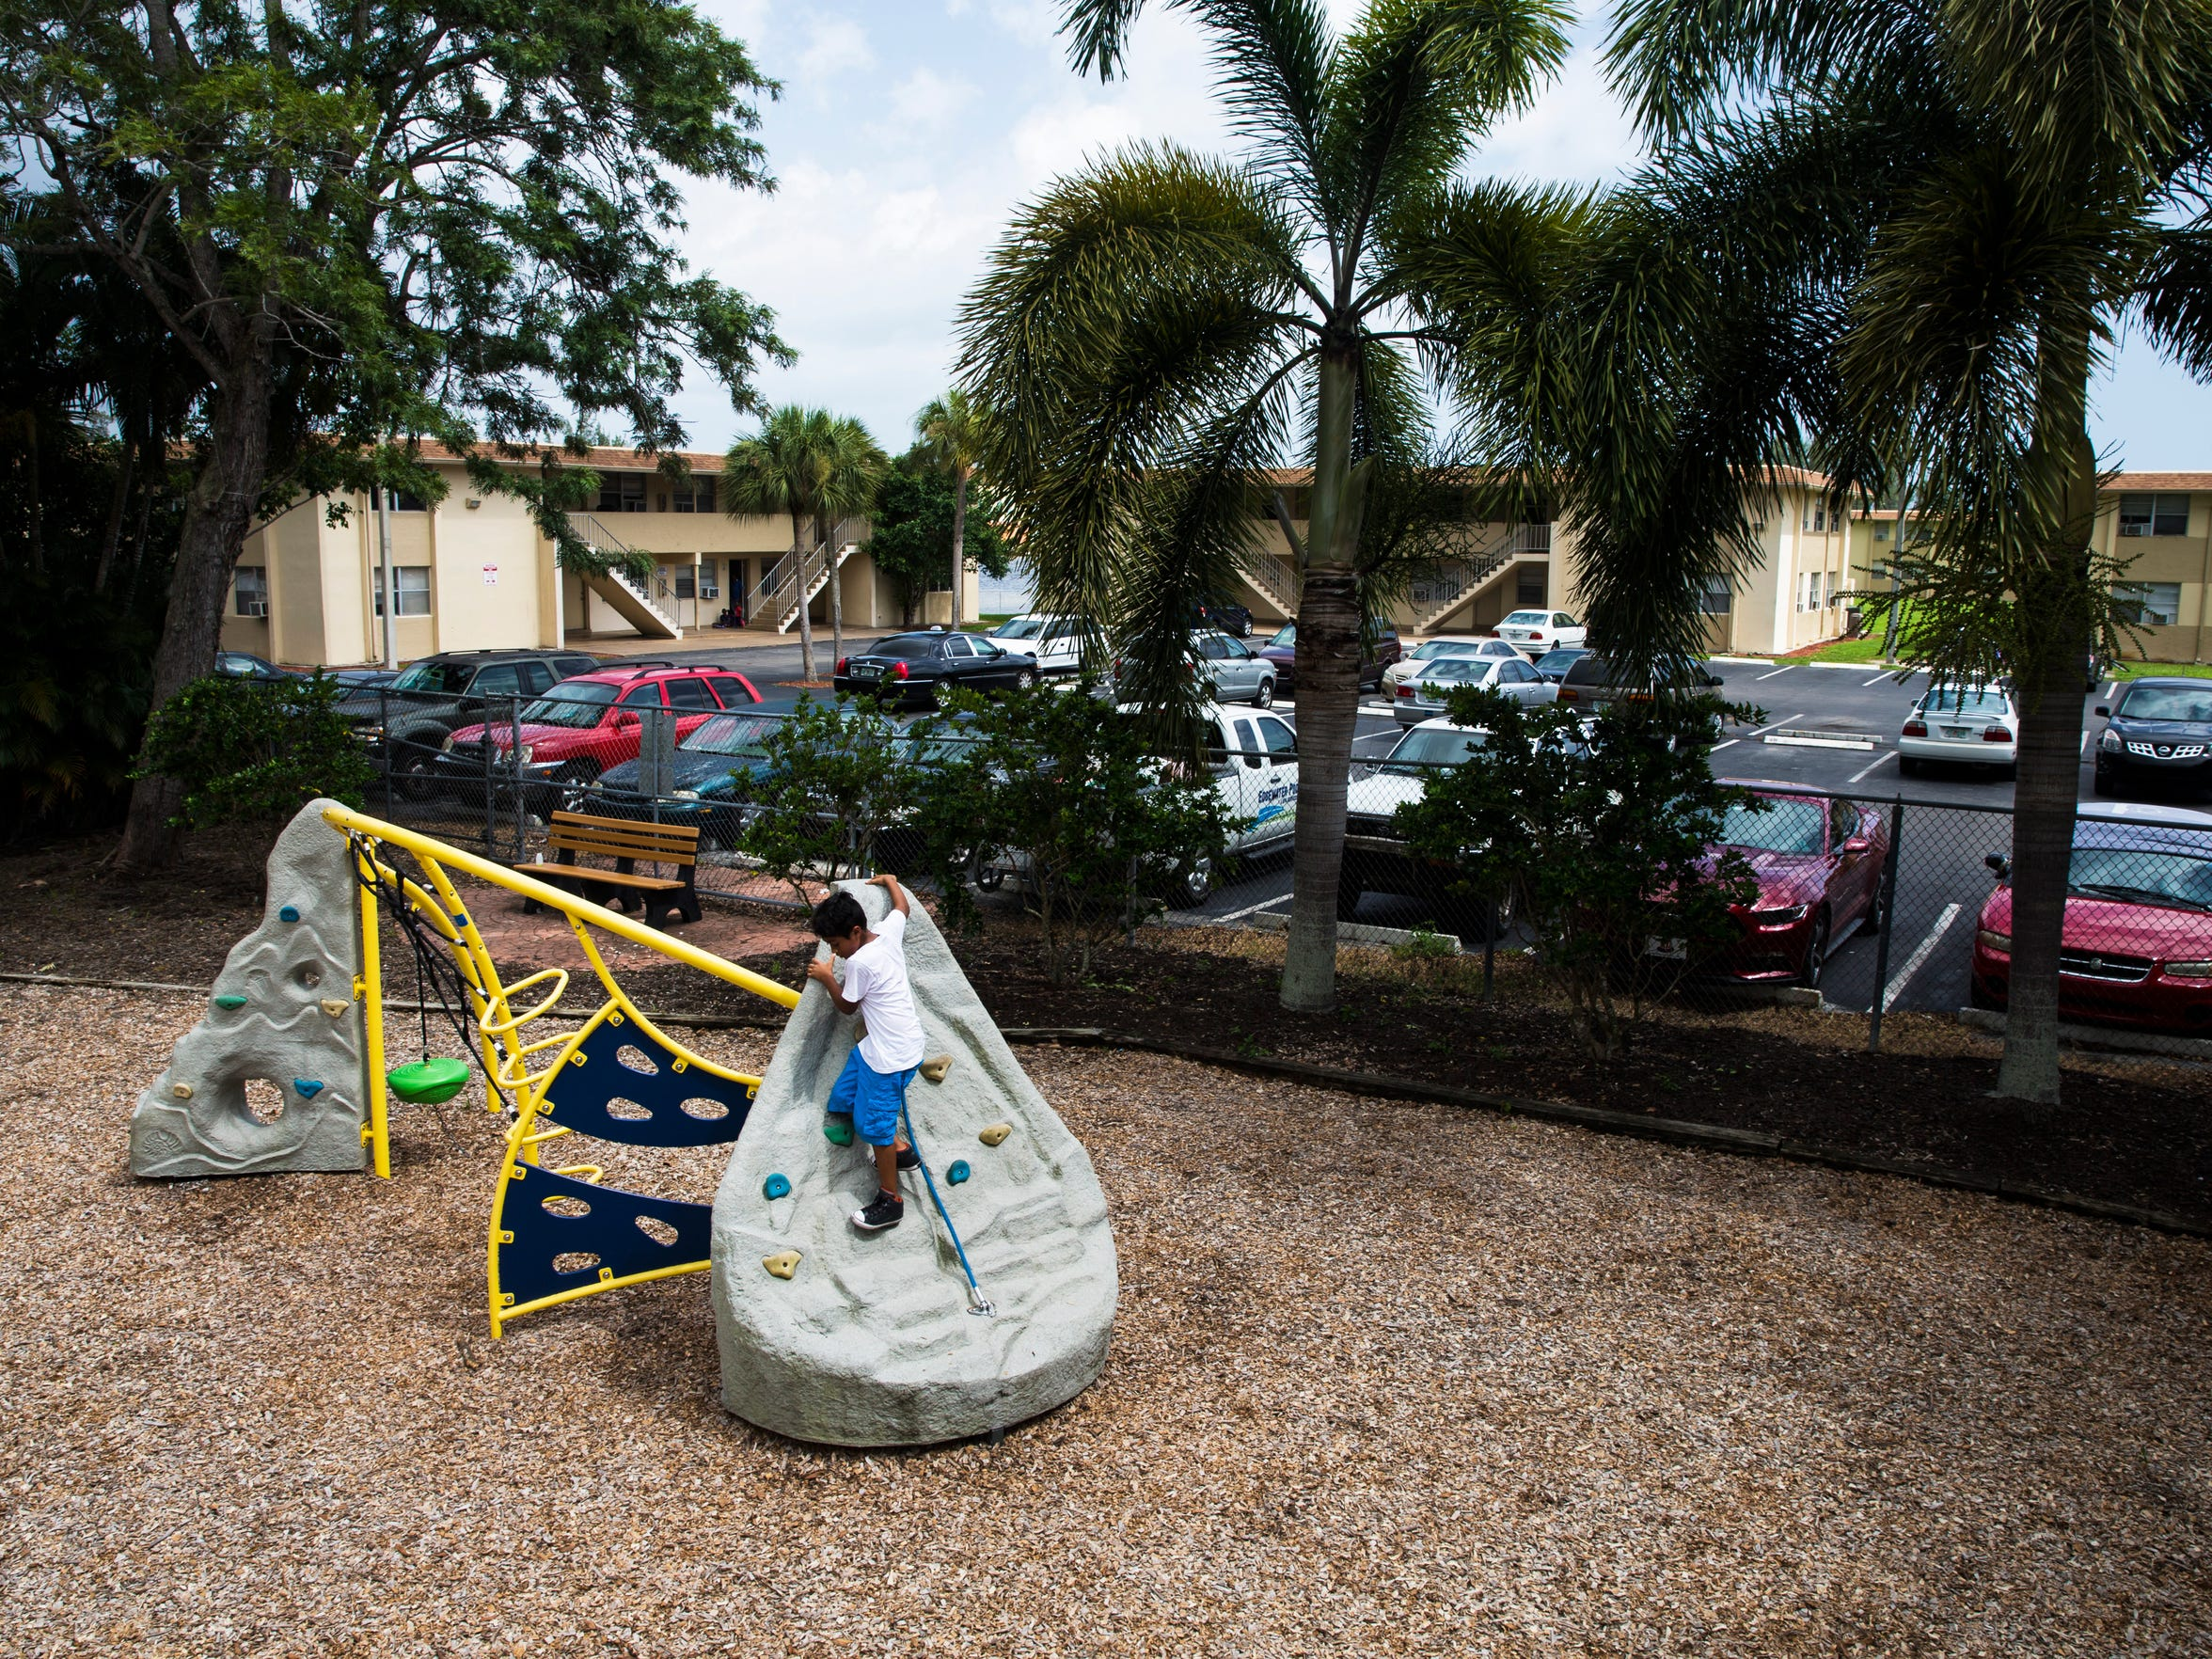 "A young boy climbs the jungle gym at the Anthony Park playground on Saturday, Aug. 5, 2017. The park has neighbored the Gordon River Apartments, a 96-unit housing project, for decades. ""If all those apartments were condominiums, and all the white folks were in there, they probably would have built a nice Baker Park here, and all the amenities that go with it,"" Willie Anthony said."